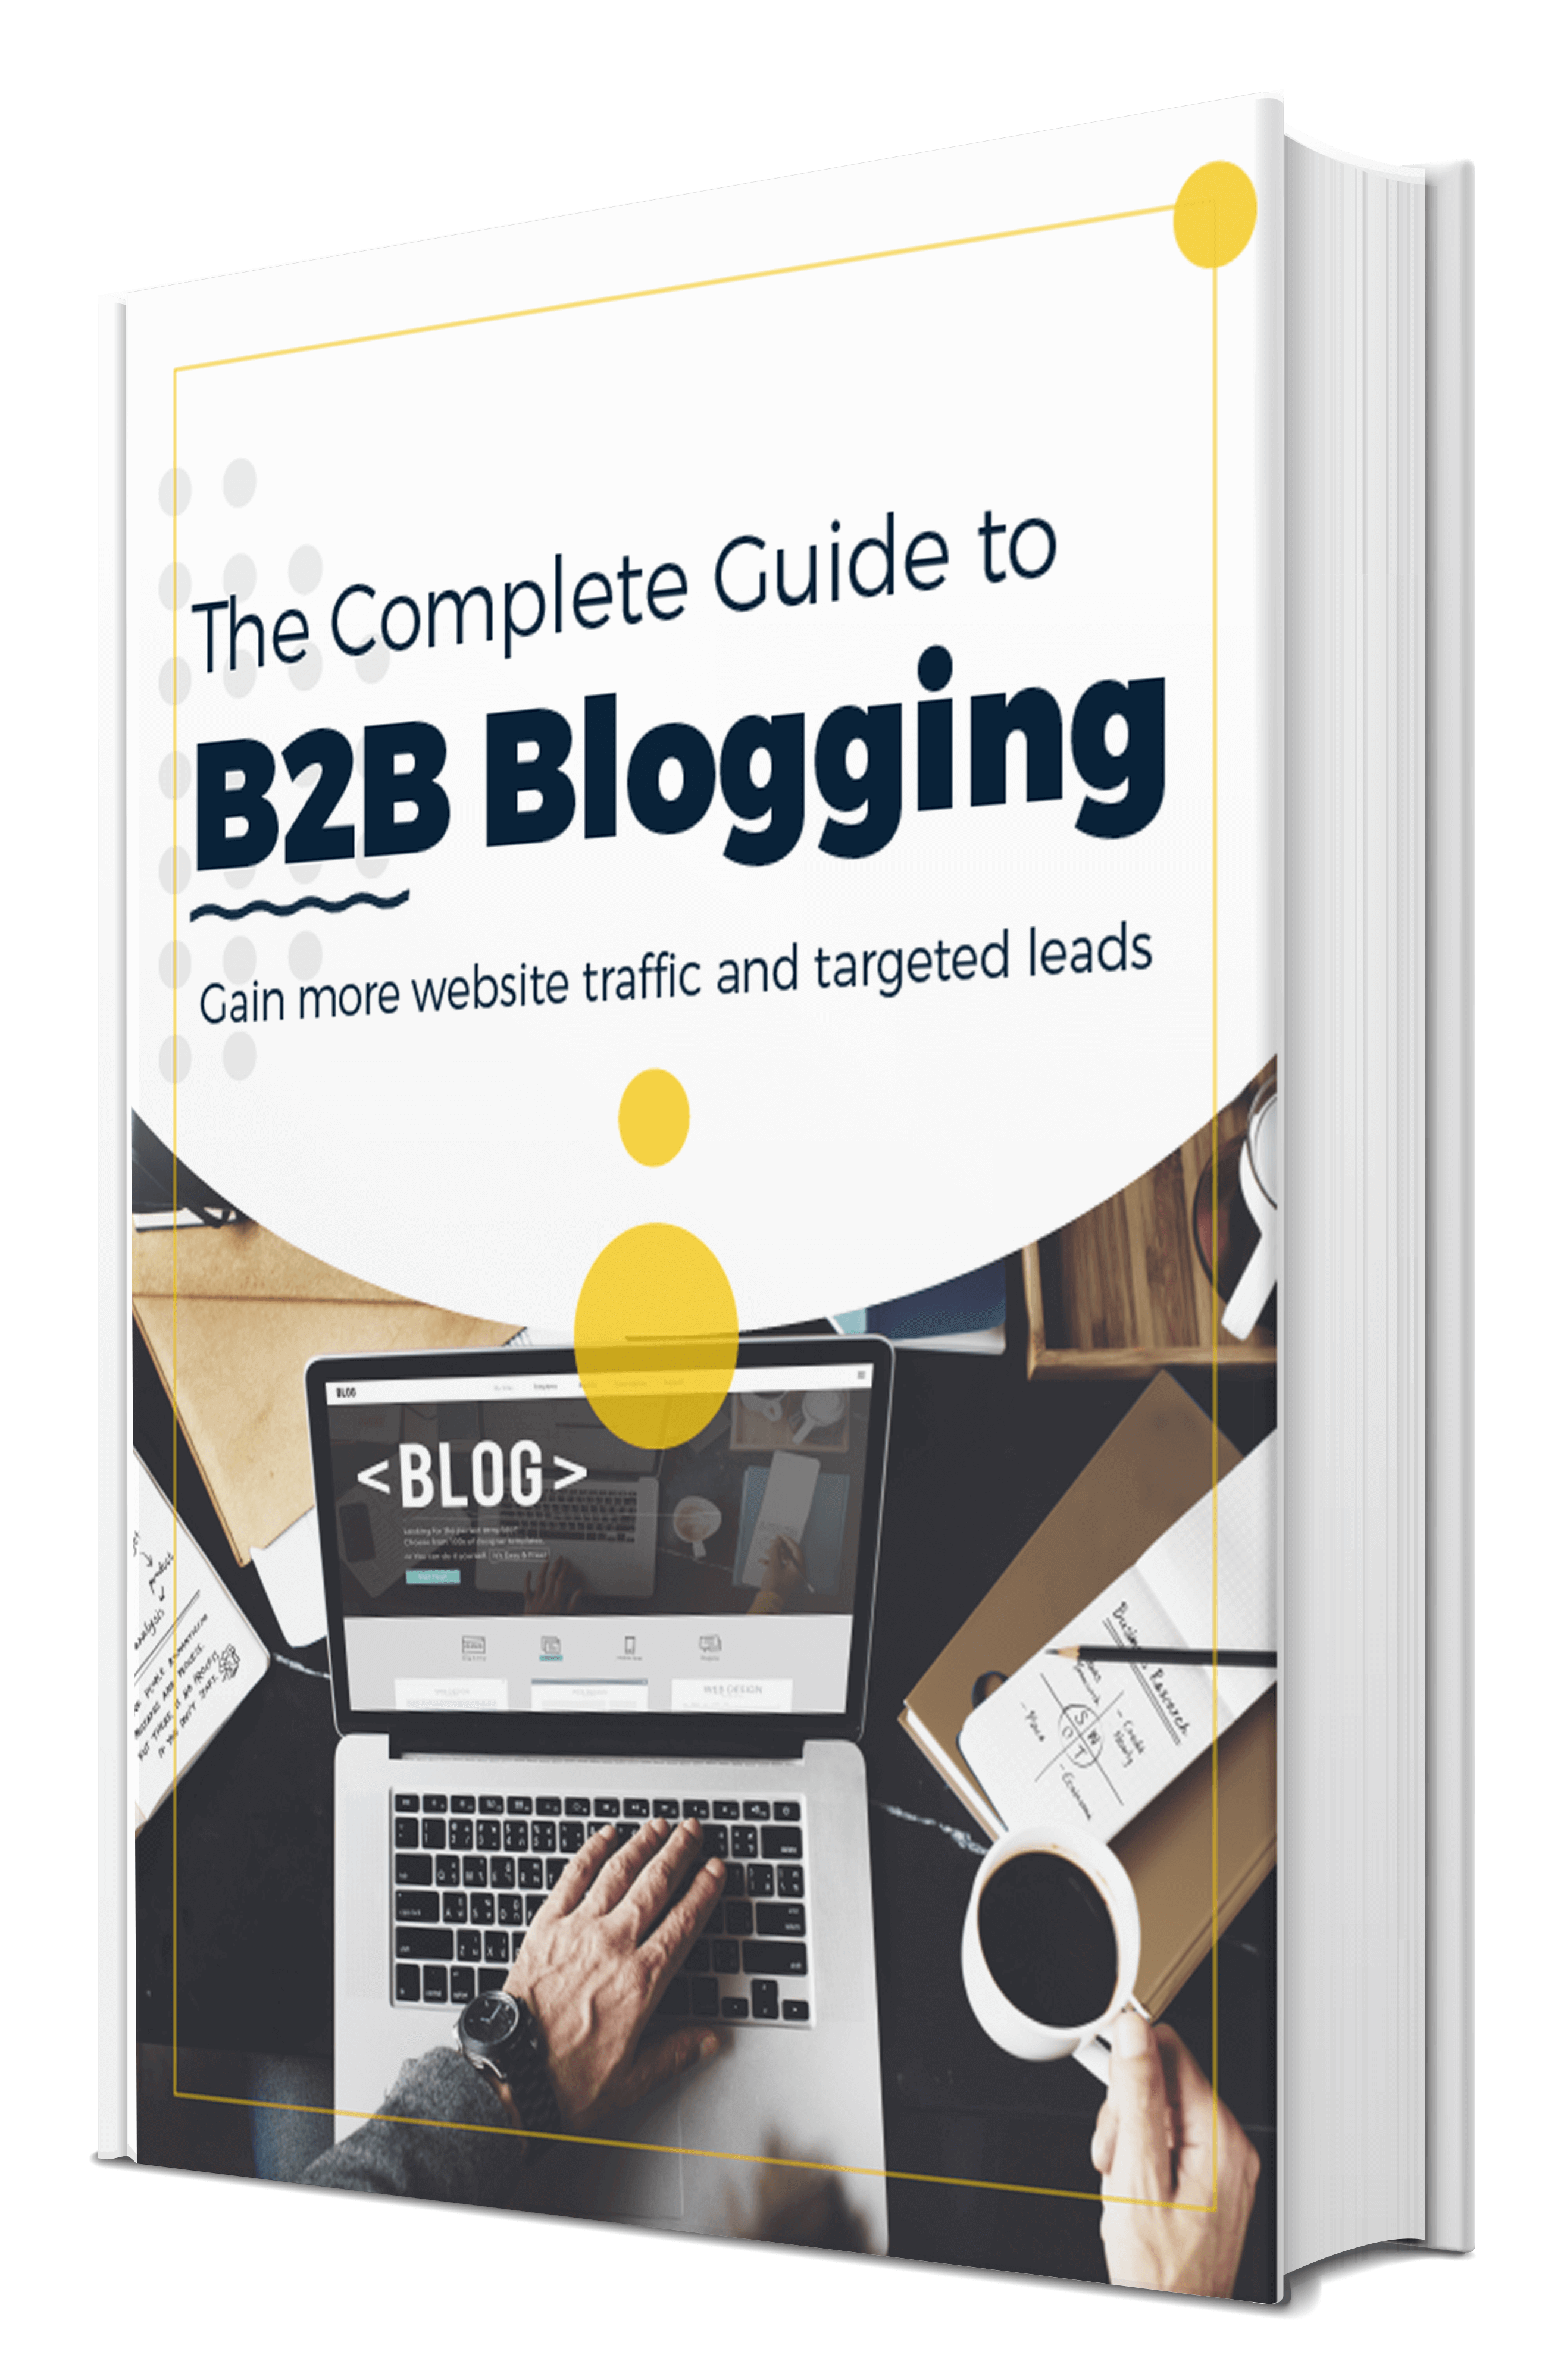 The Complete Guide to B2B Blogging